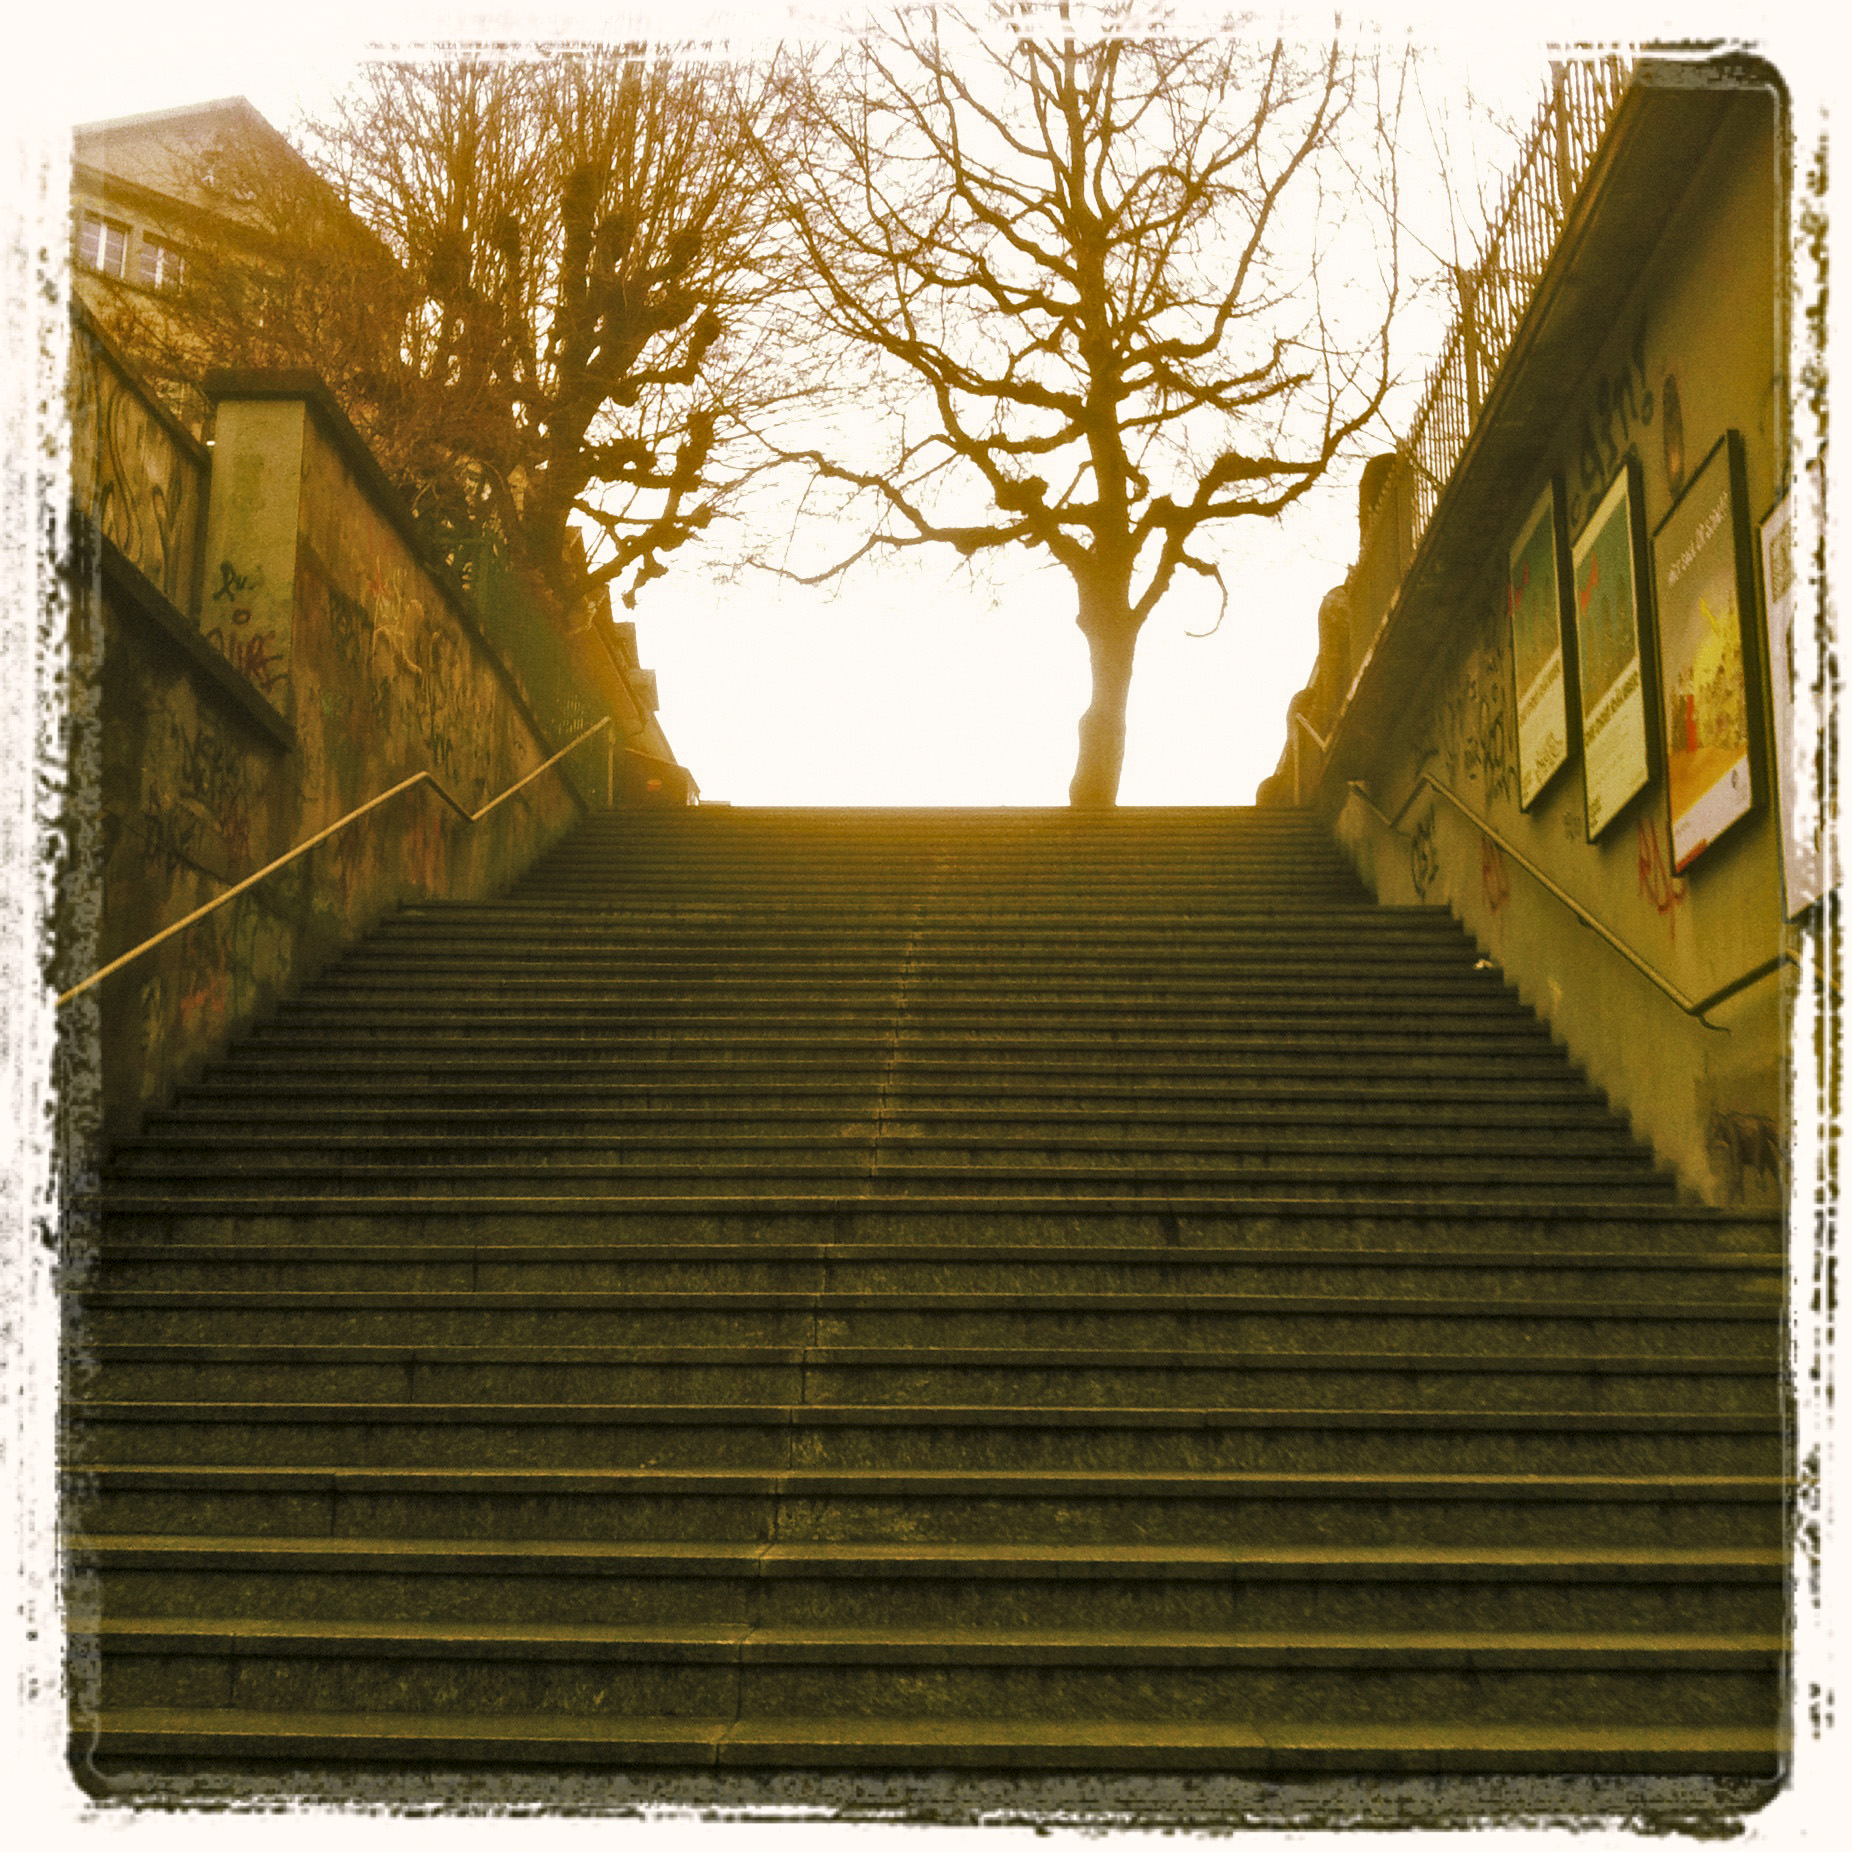 New steps. 22.12.12 ©lowereast.dk